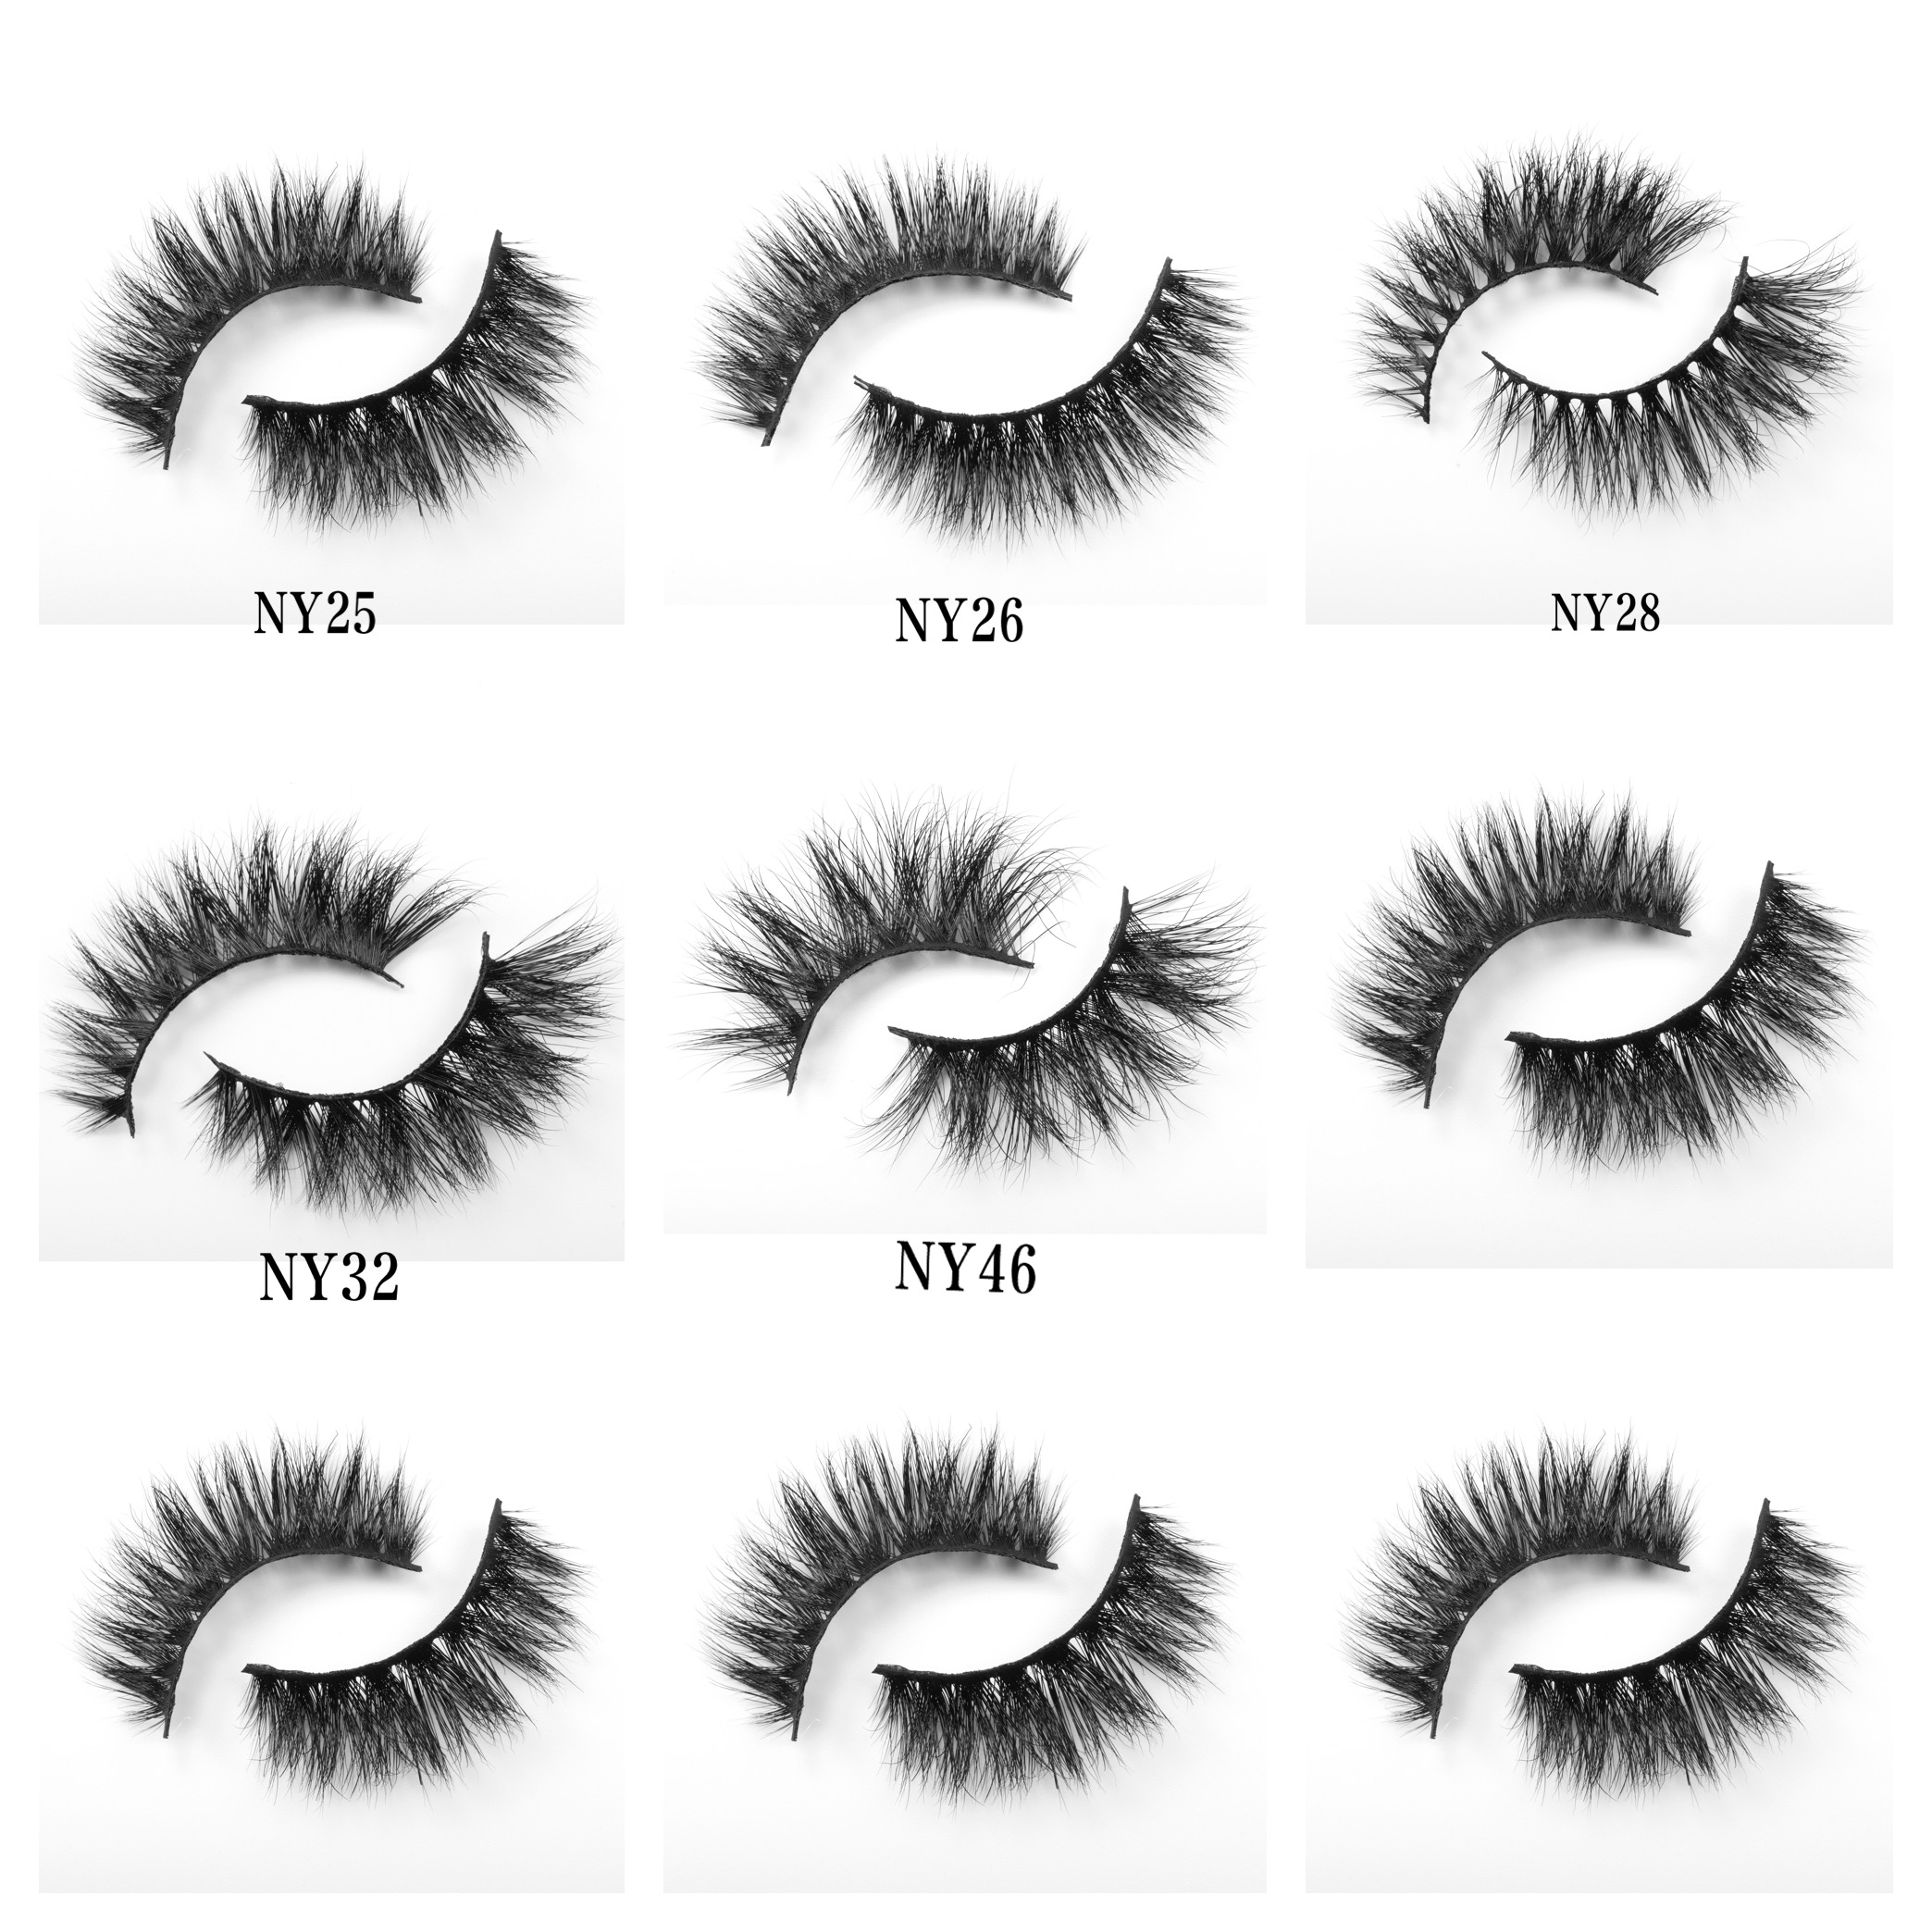 MAYNICE Mink Lashes 3D Mink 100% Cruelty Free Handmade Eyelashes False